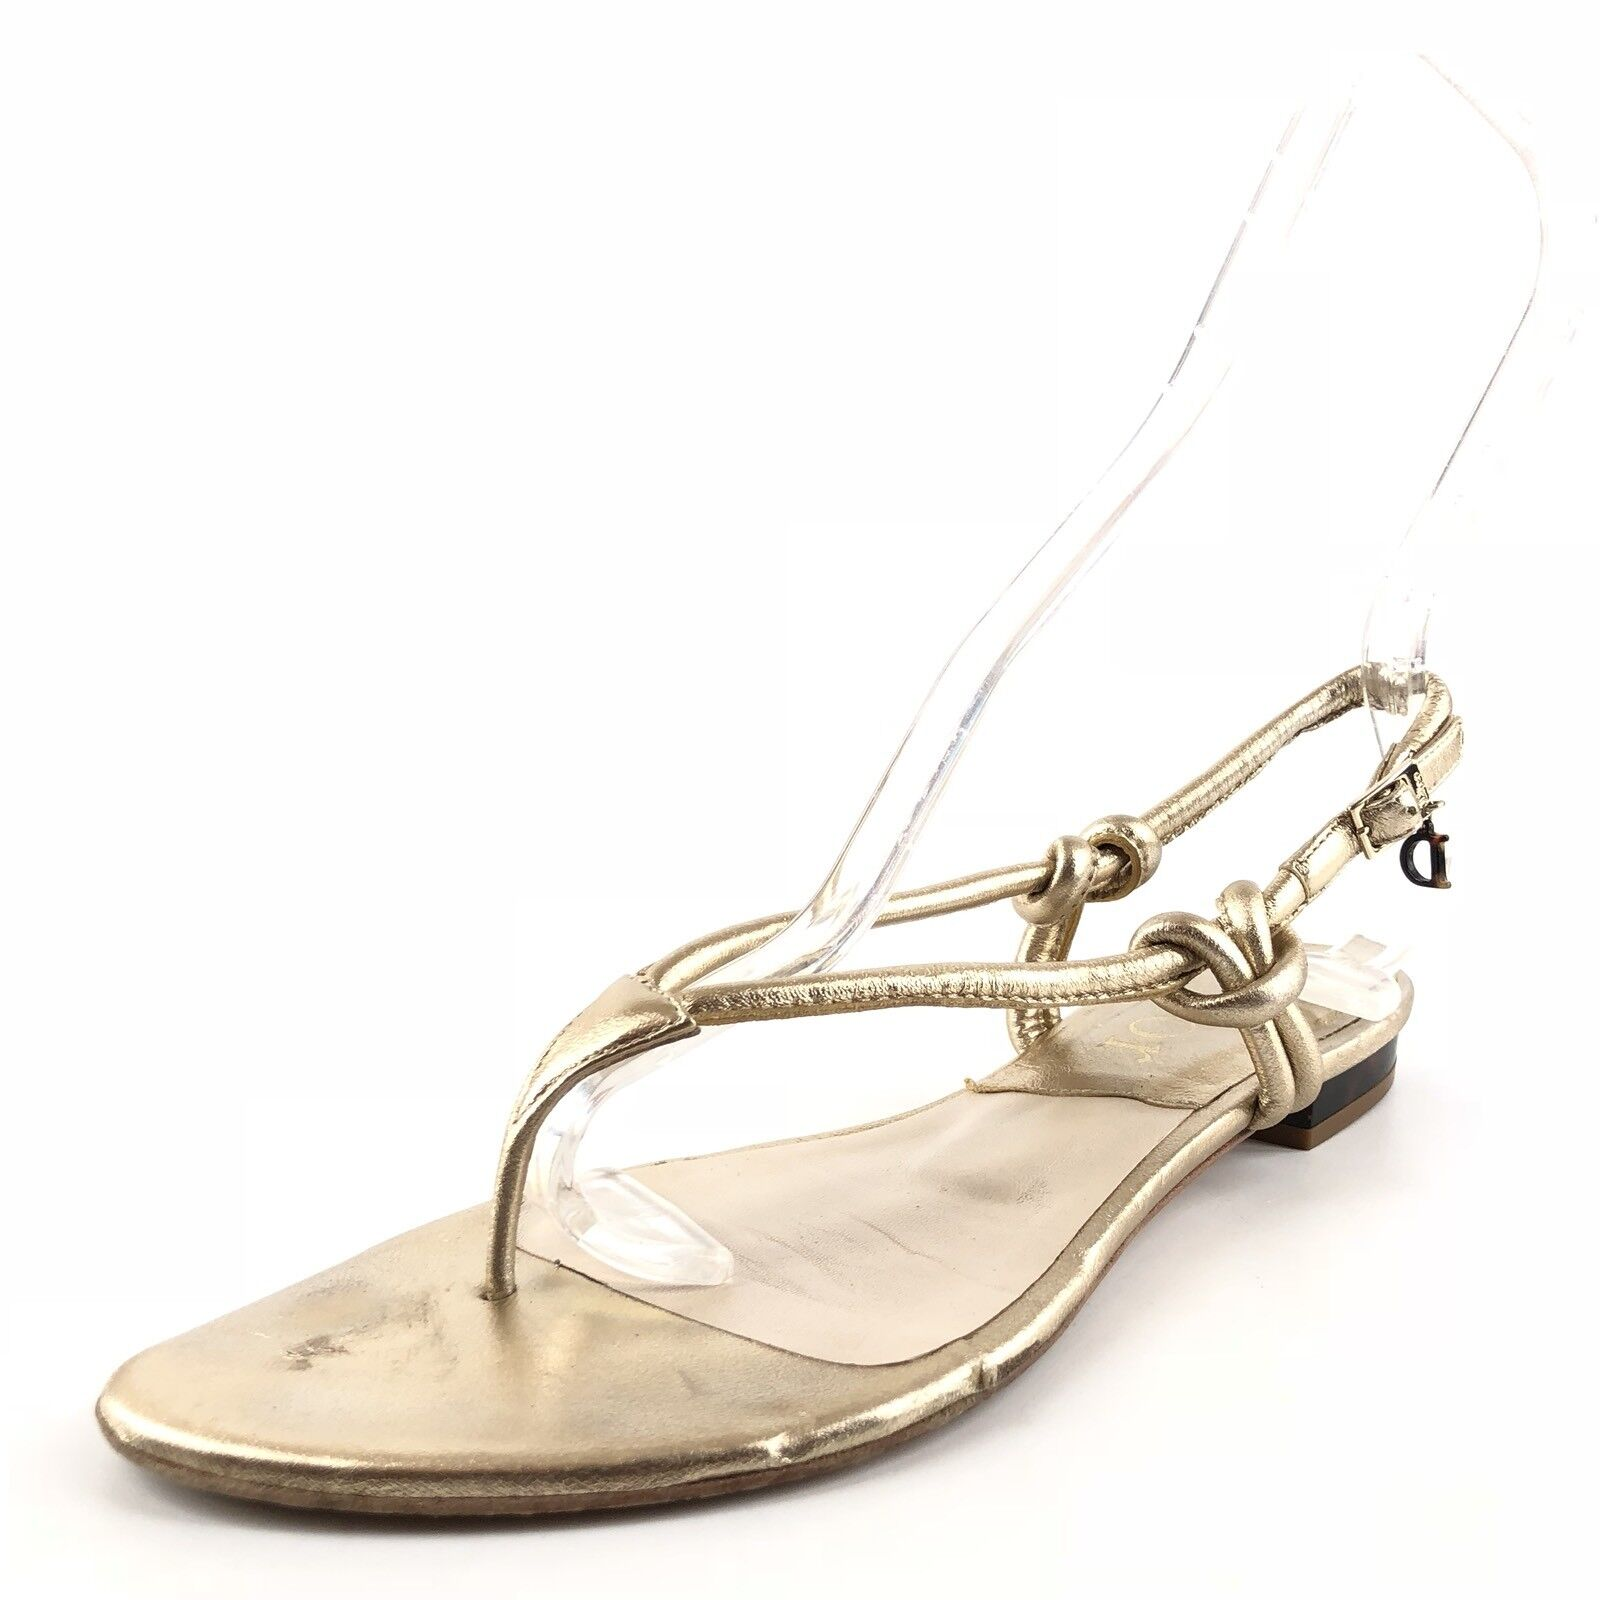 Christian Dior gold Leather Slingback Thong Sandals Flats Womens Size 37.5 M